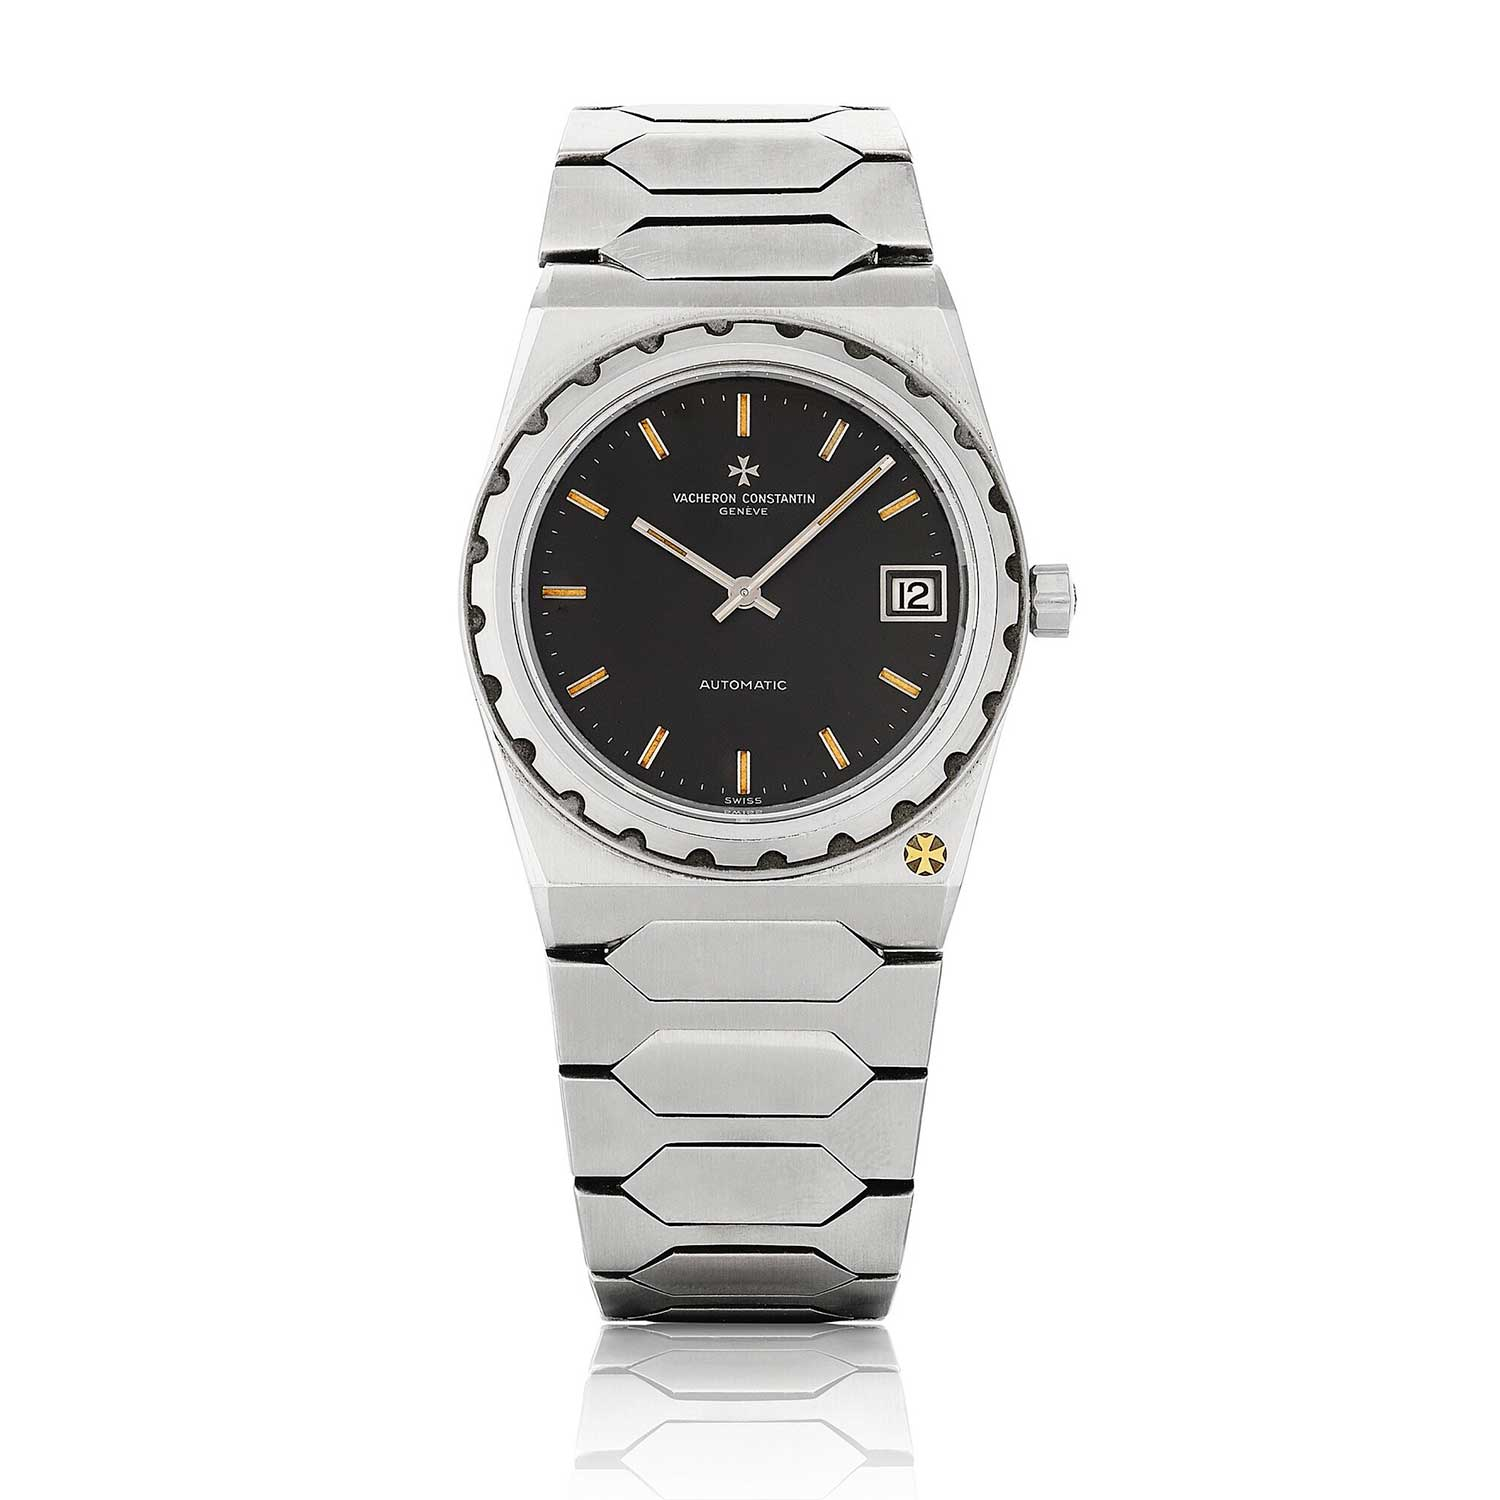 Vacheron Constantin's foray into the stainless steel sports-chic integrated bracelet watch genre was the 222, ref. 44018, designed by Jörg Hysek was launched in 1977 (Image: sothebys.com)